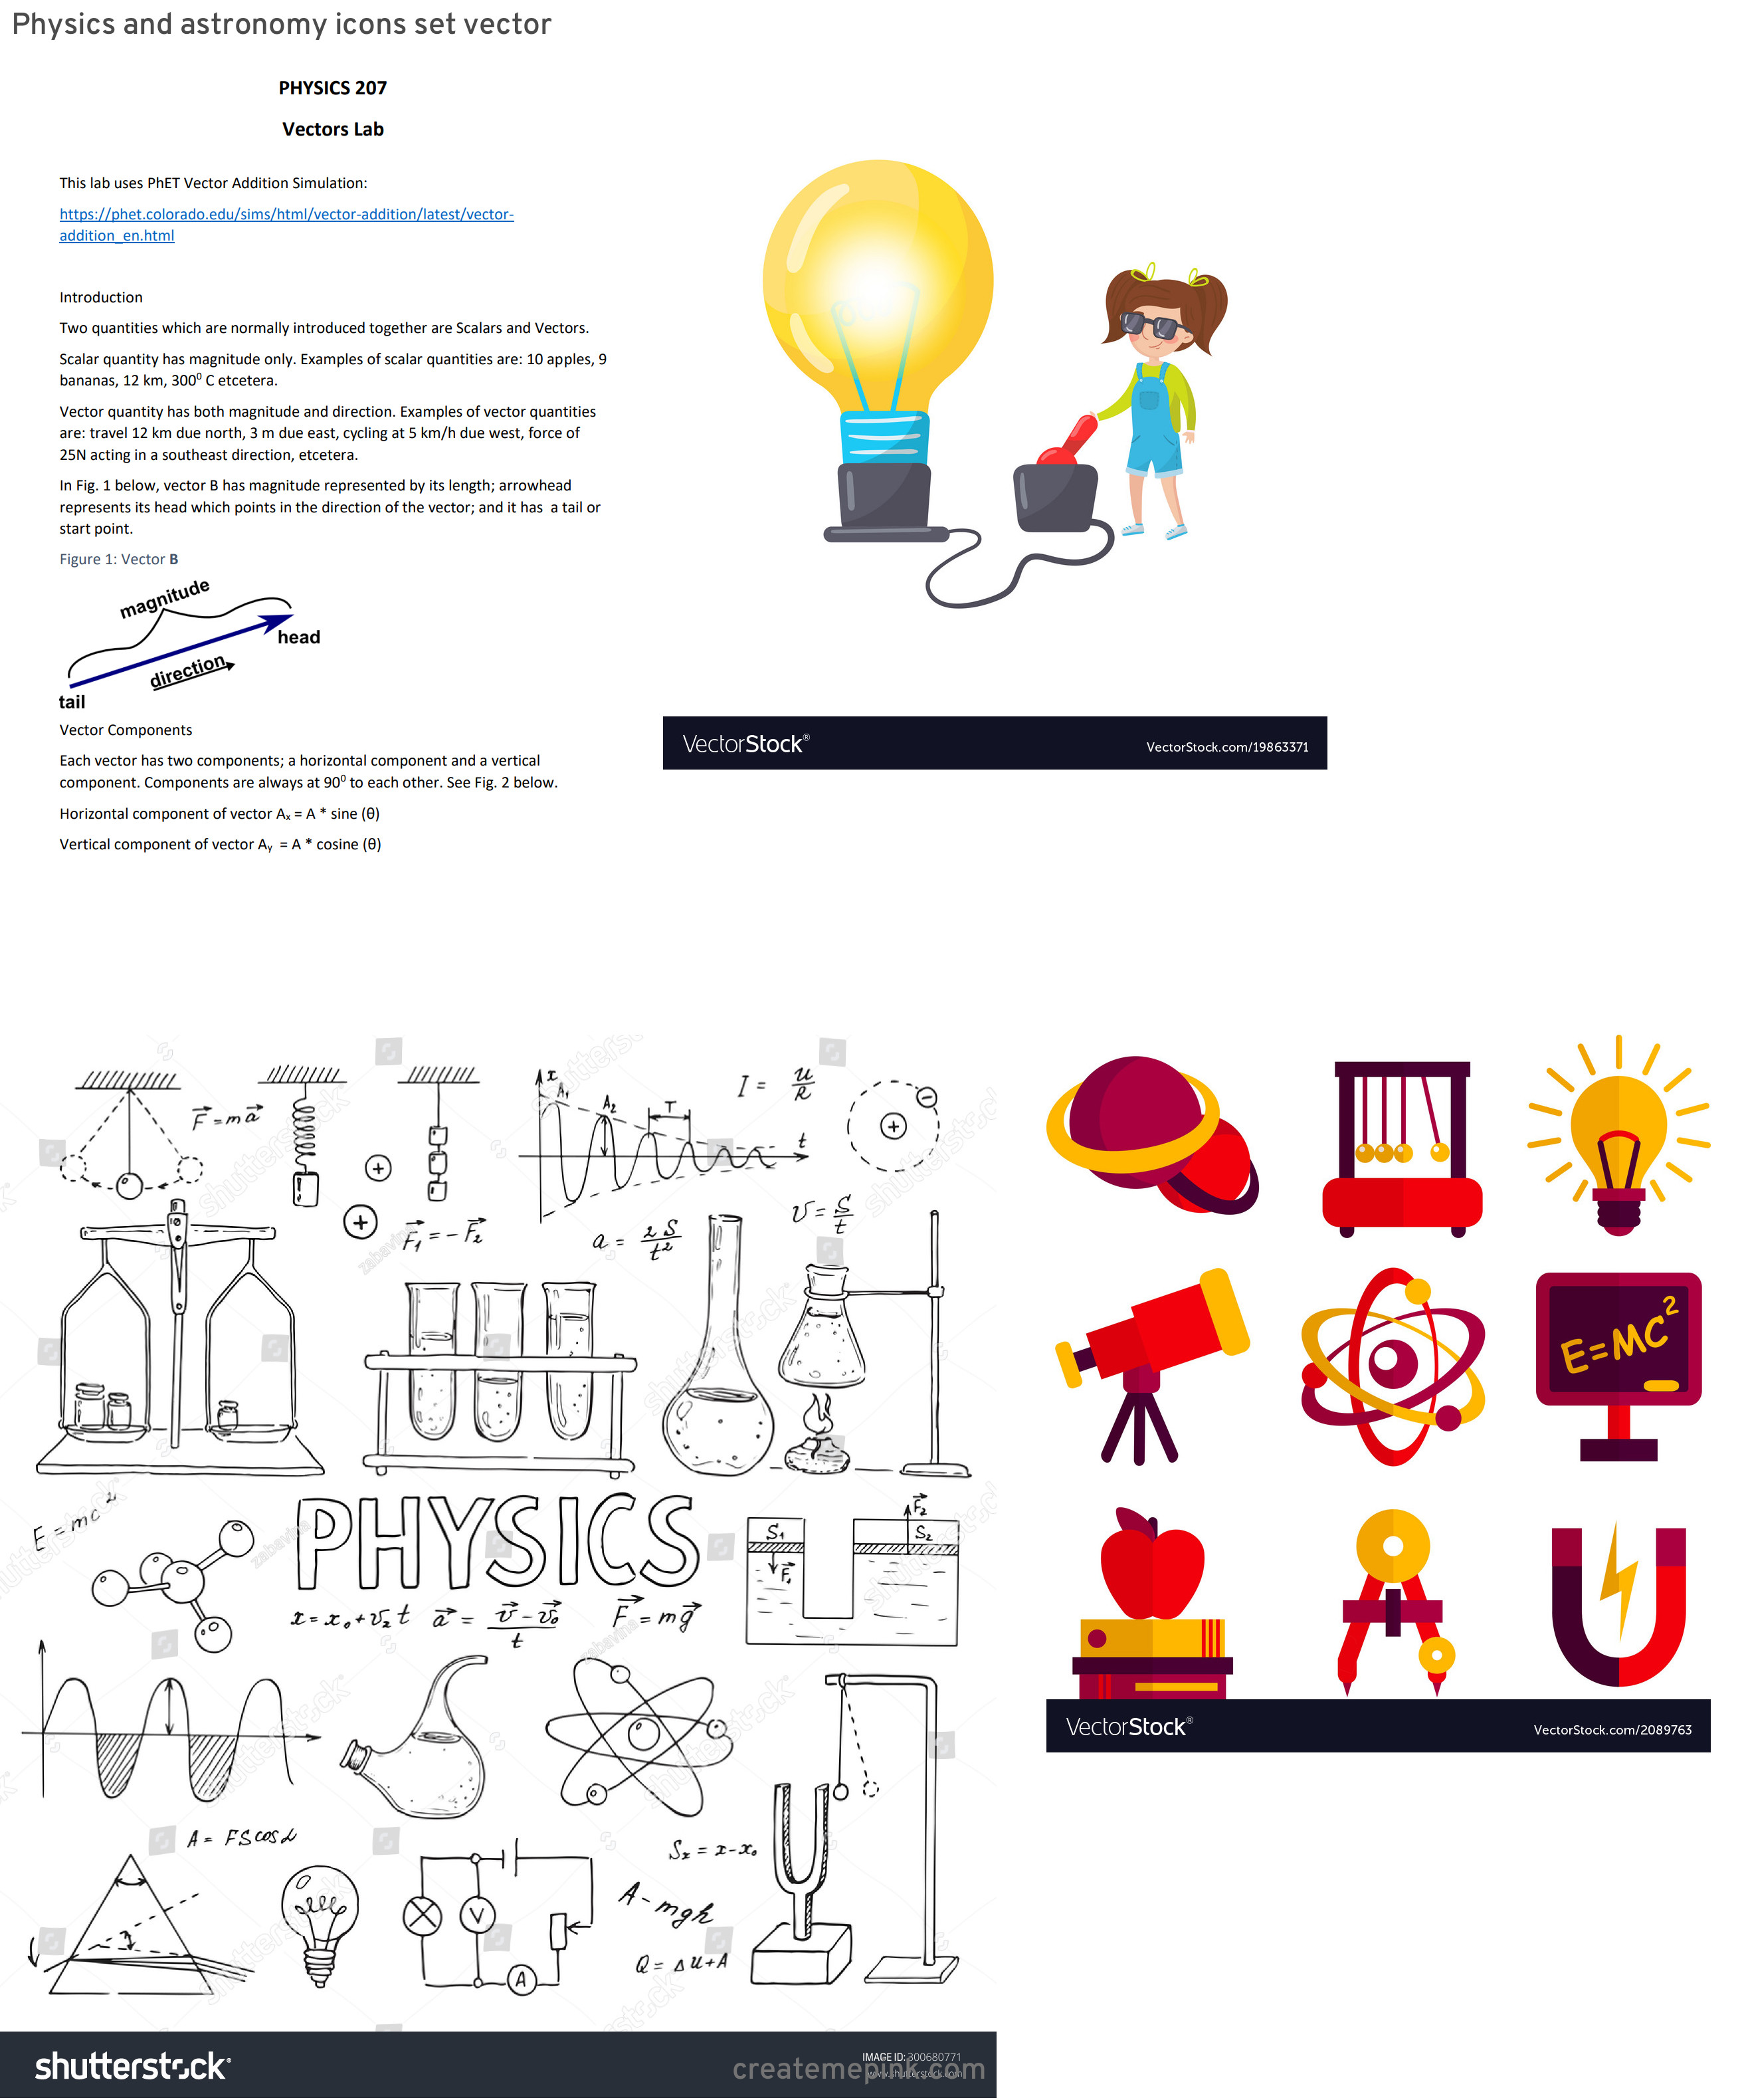 Vectors Physics Lab: Physics And Astronomy Icons Set Vector